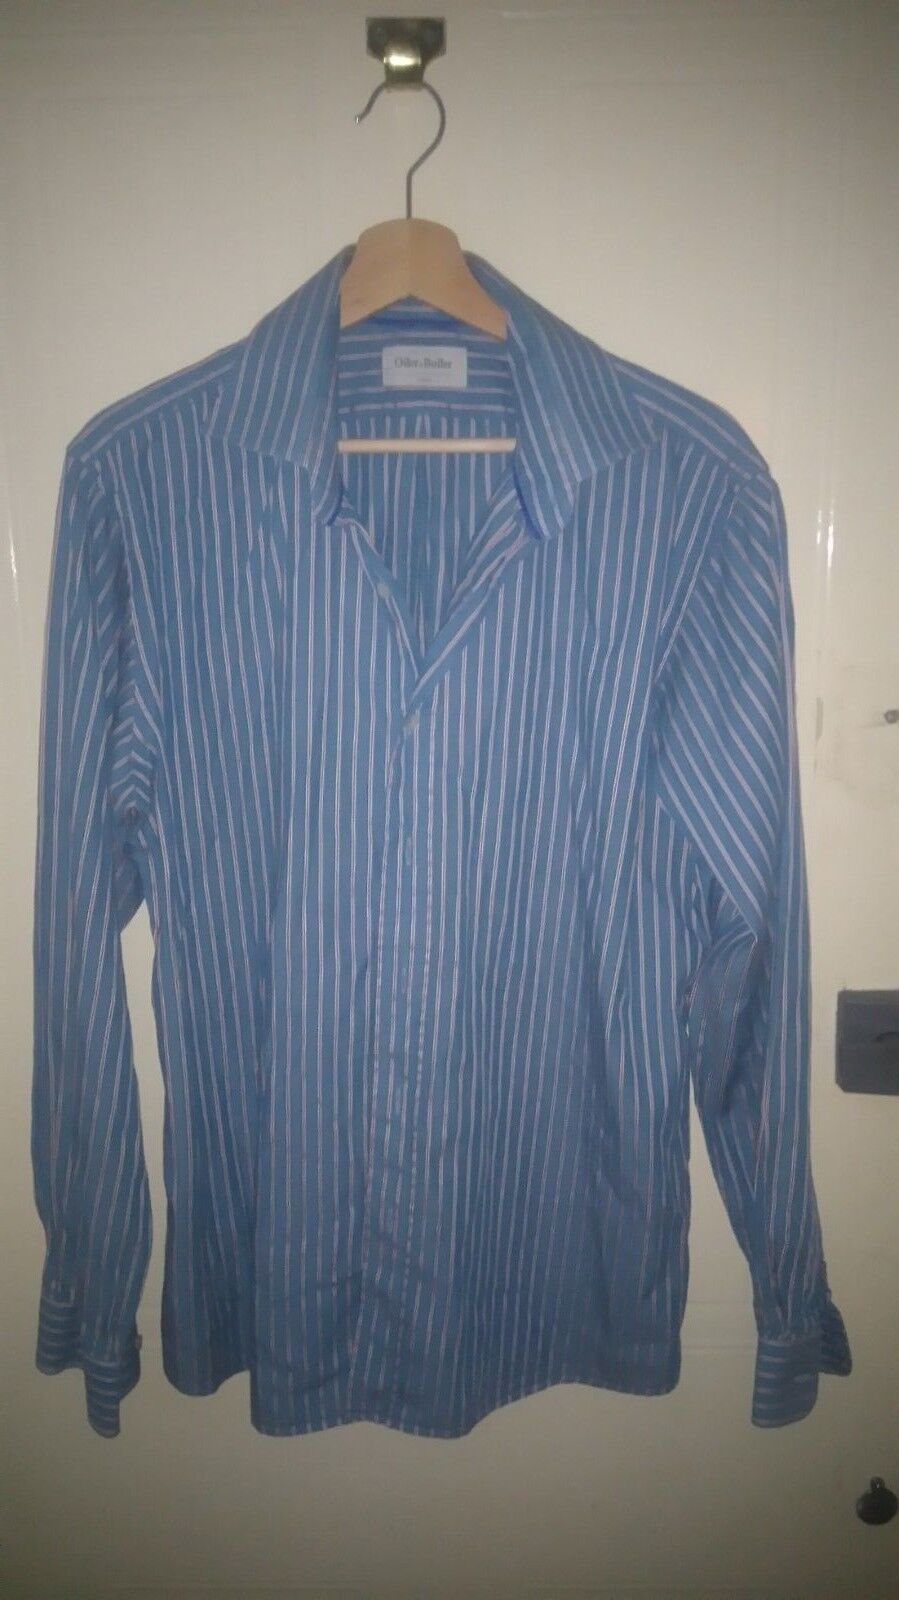 de187e12 Oiler and Boiler mens bluee with red pinstripe long sleeves large 46 inch  chest. '